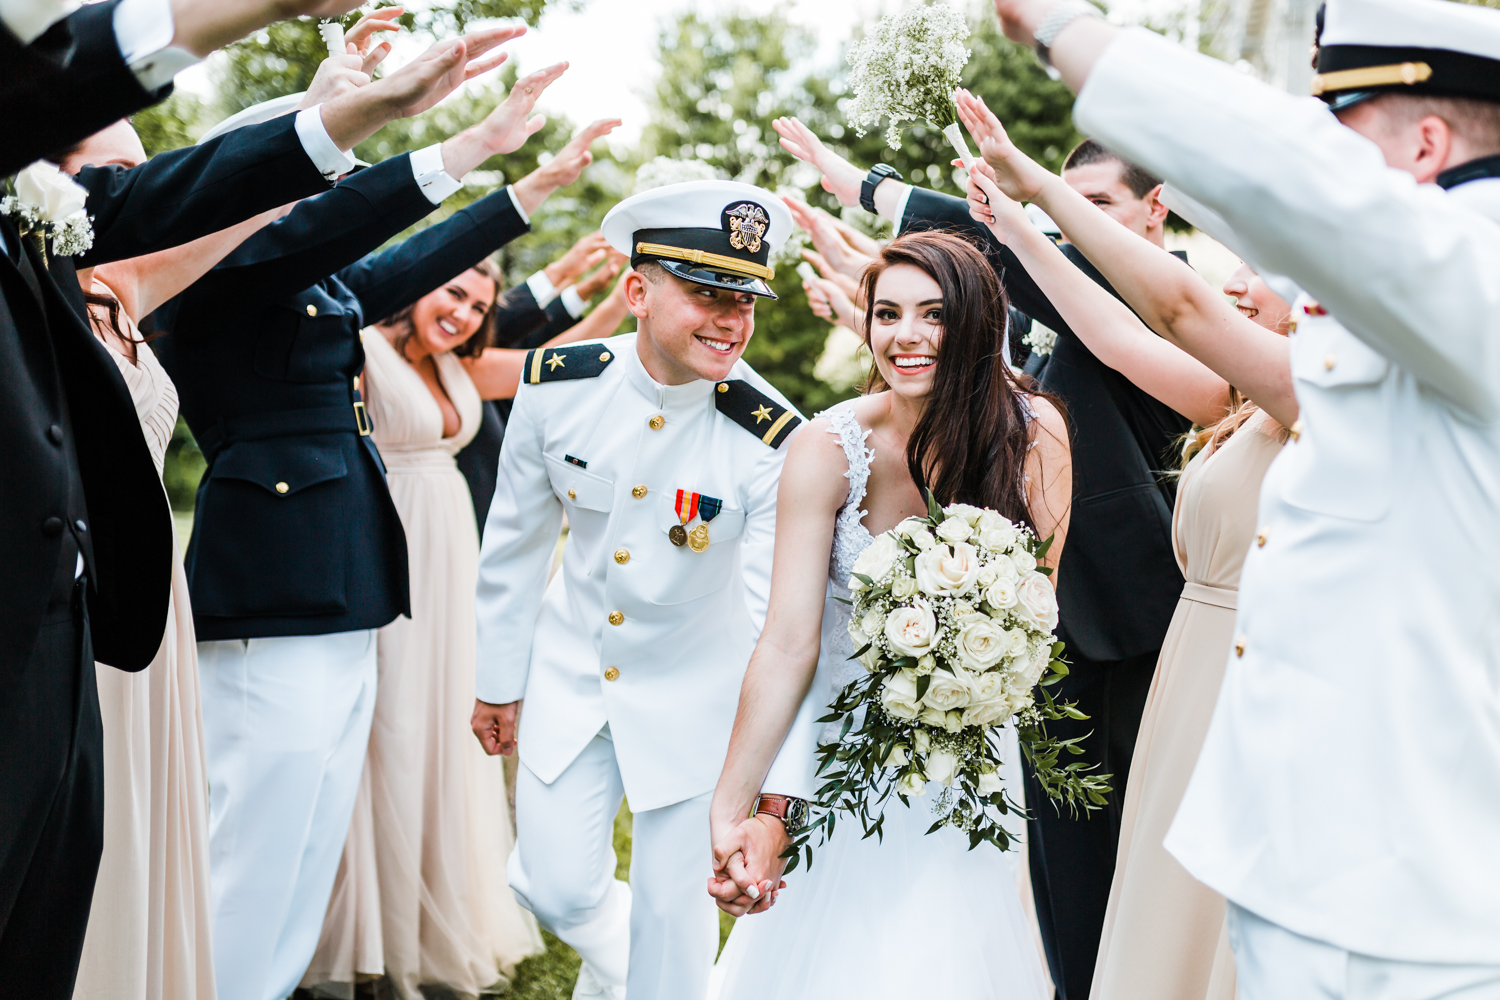 best wedding photo and video in annapolis, md - fun bridal party photos